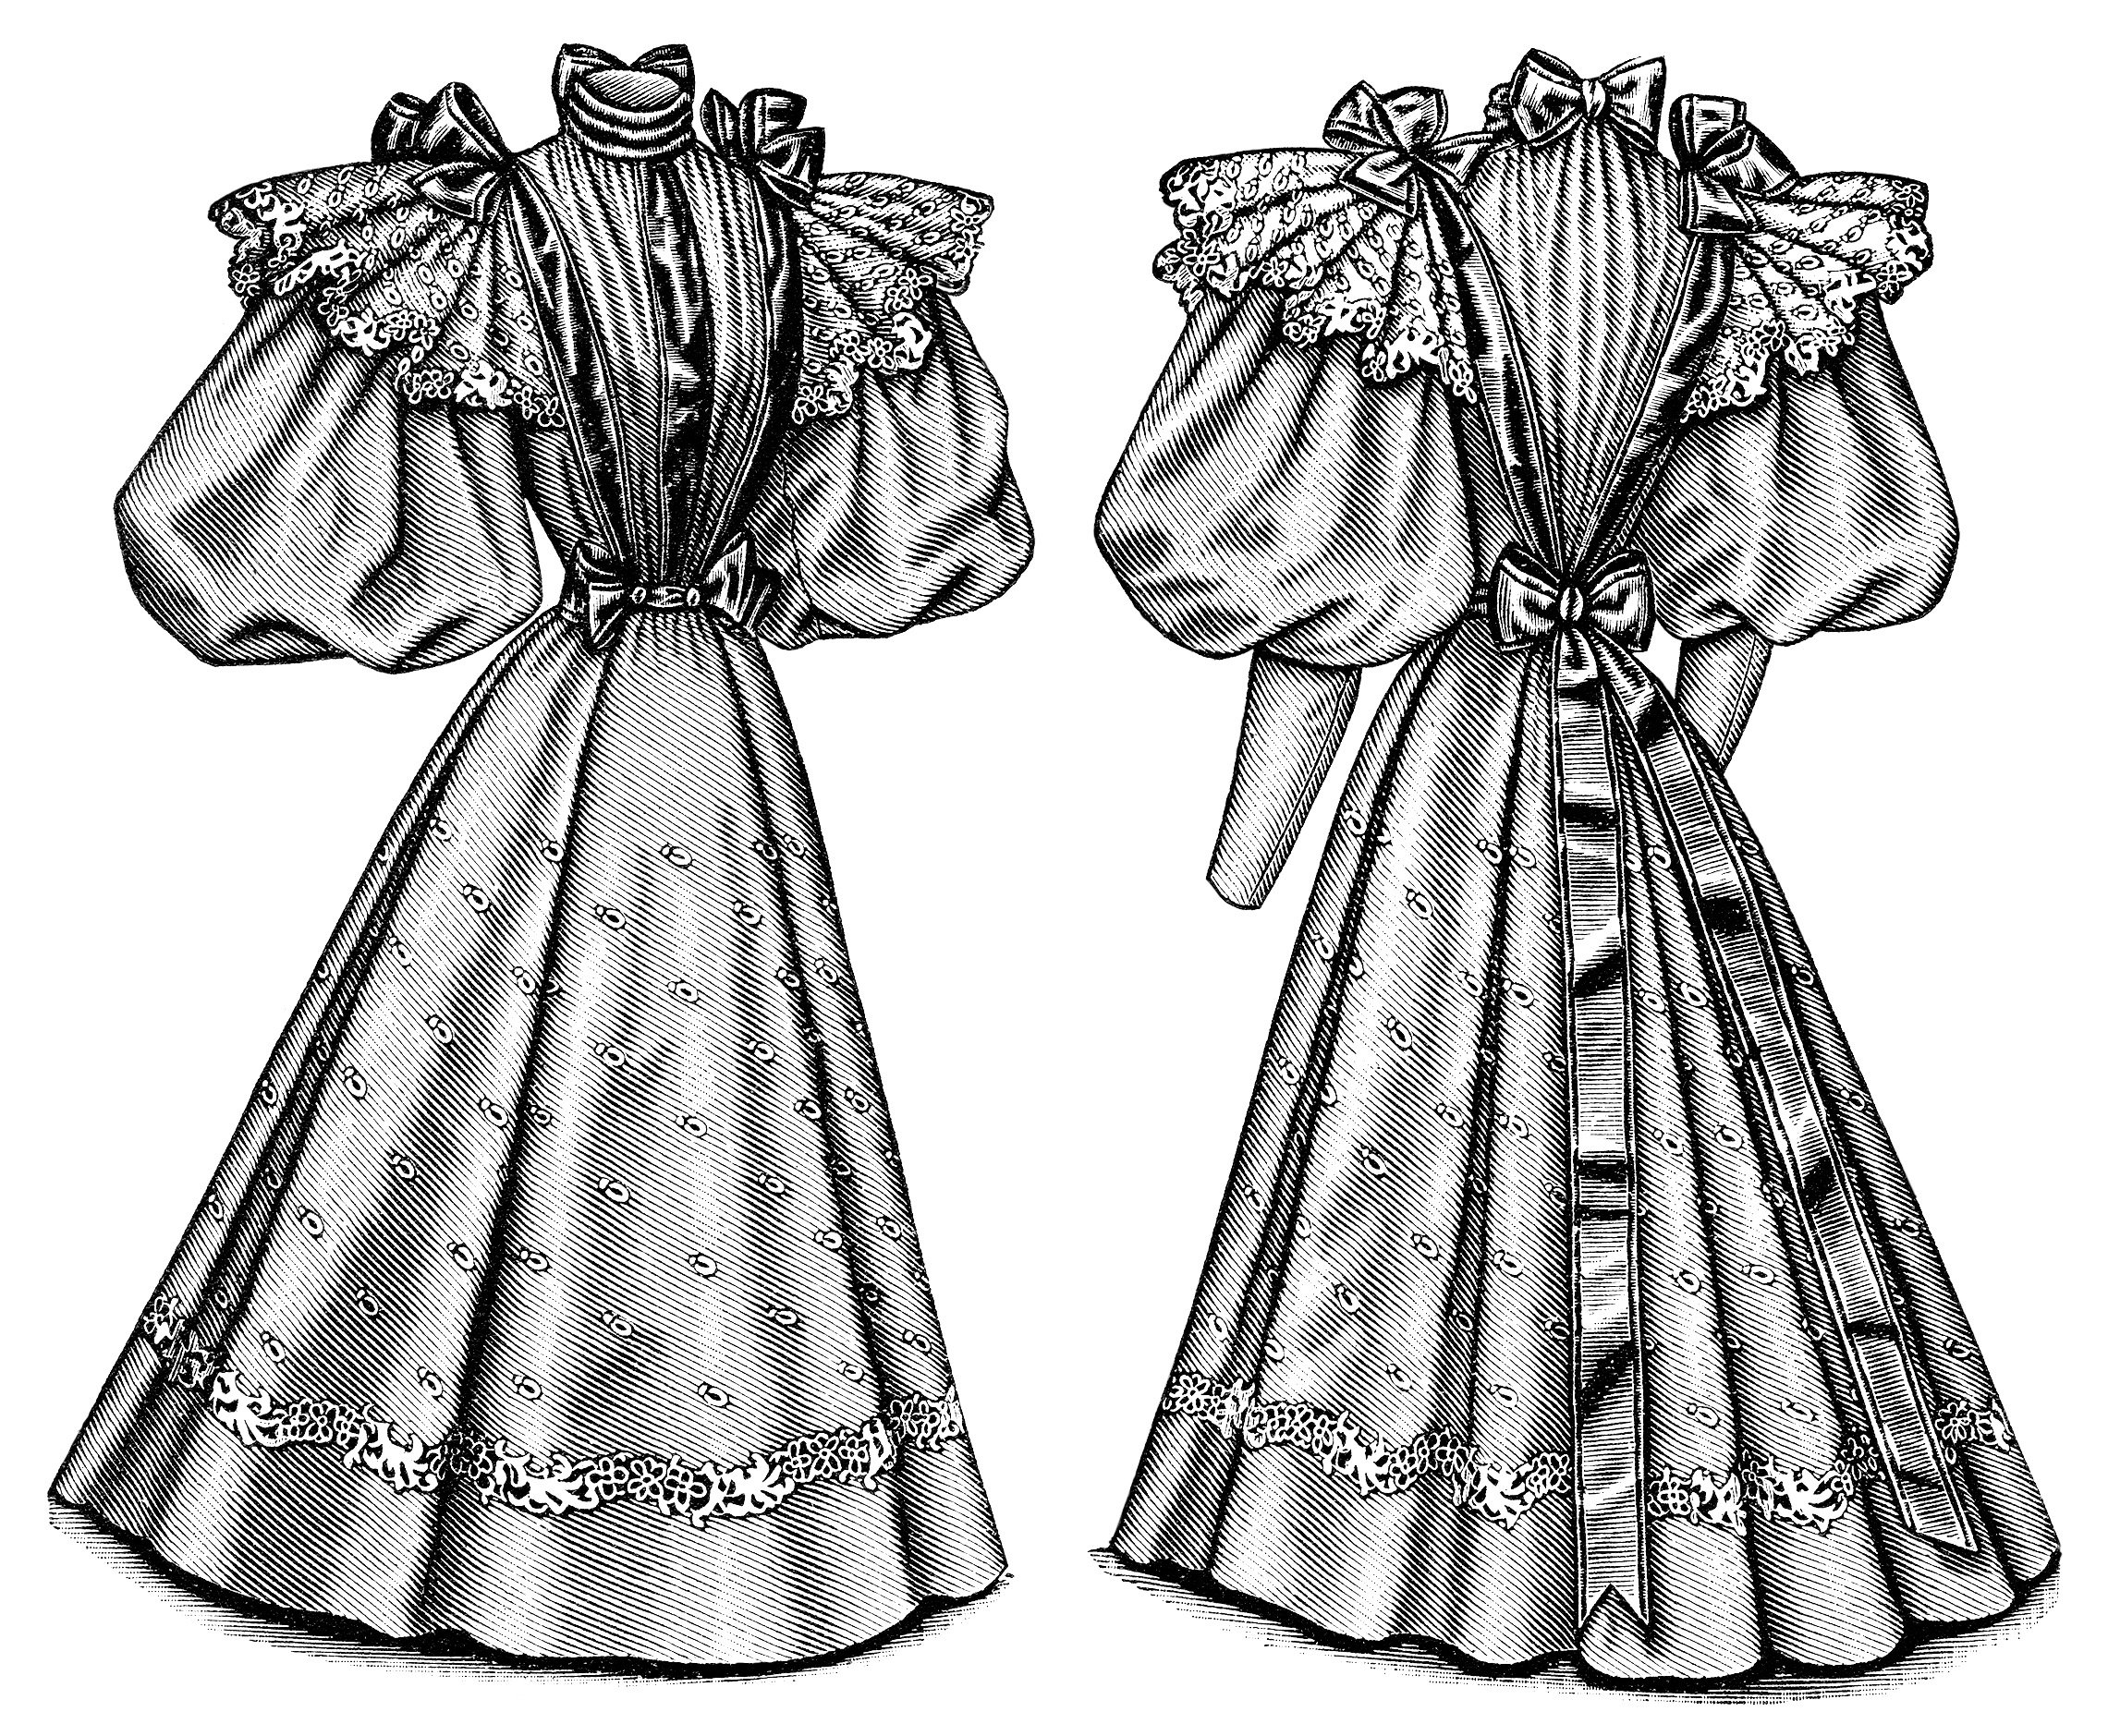 Edwardian fashion illustration, Victorian ladies fashion clip art, vintage dress image, black and white clip art, antique ladies costume printable